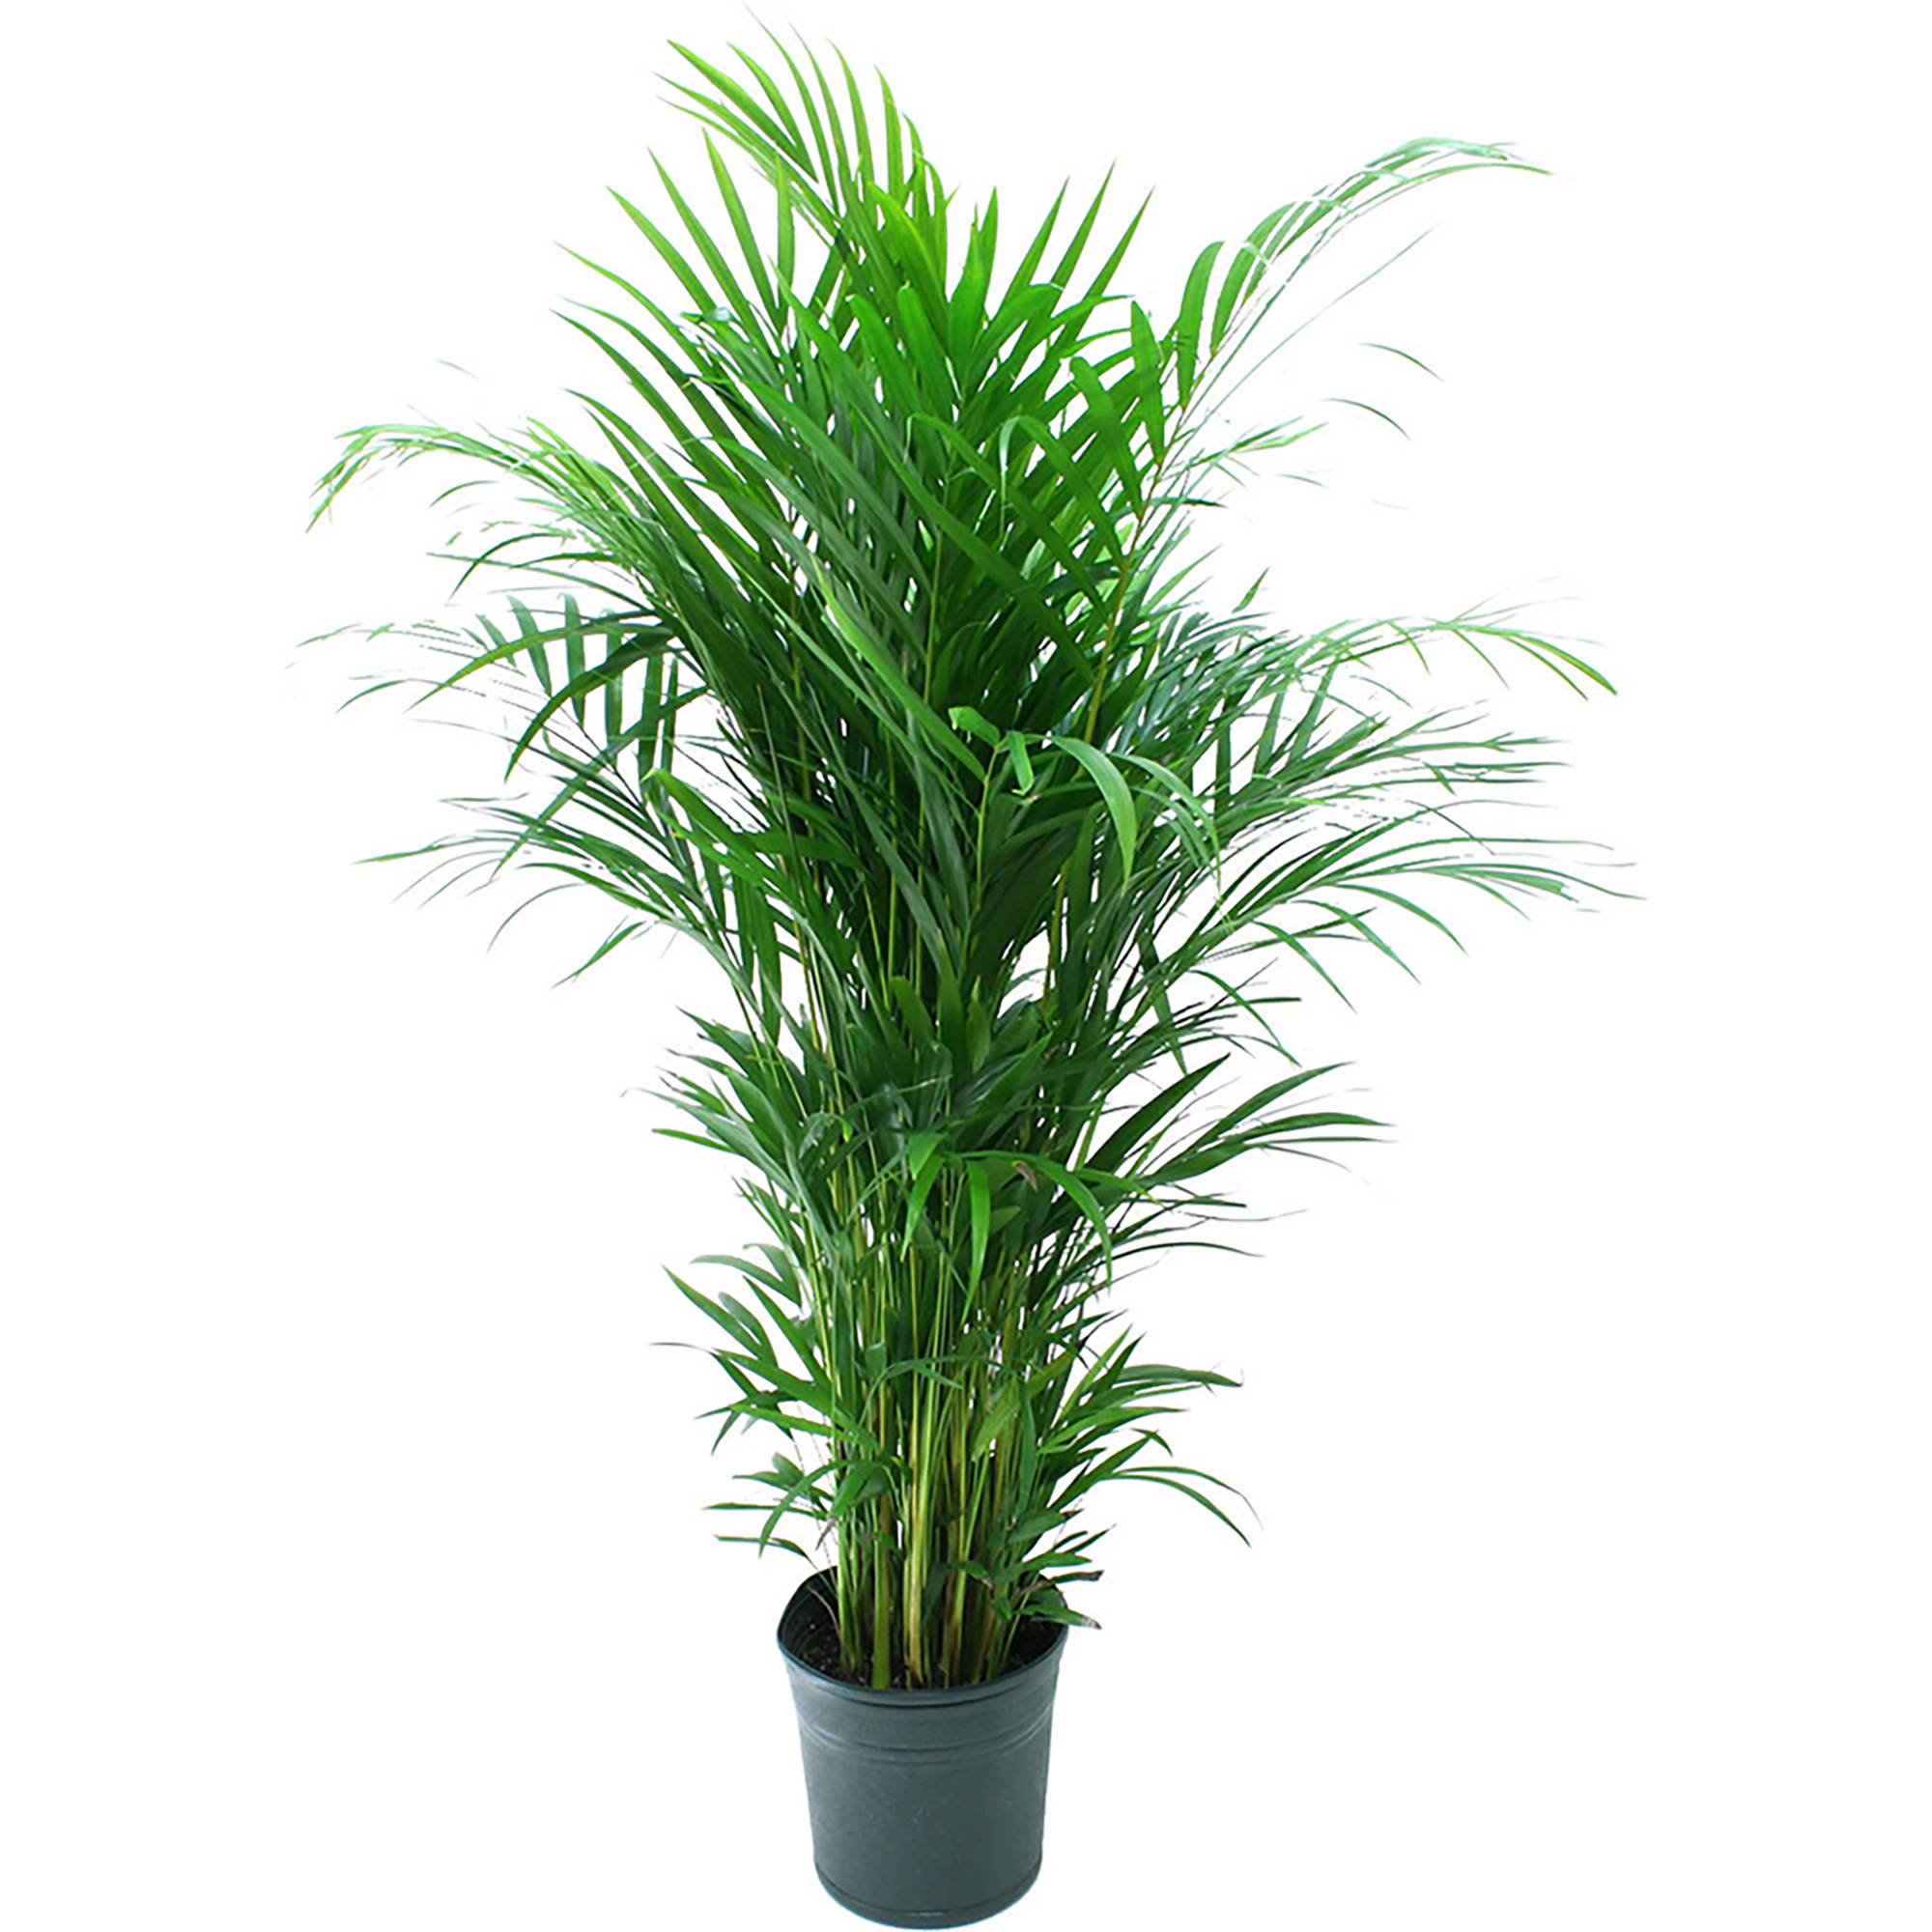 Delray Plants Areca Palm (Dypsis lutescens) Easy to Grow Live House Plant, 10-inch Grower Pot